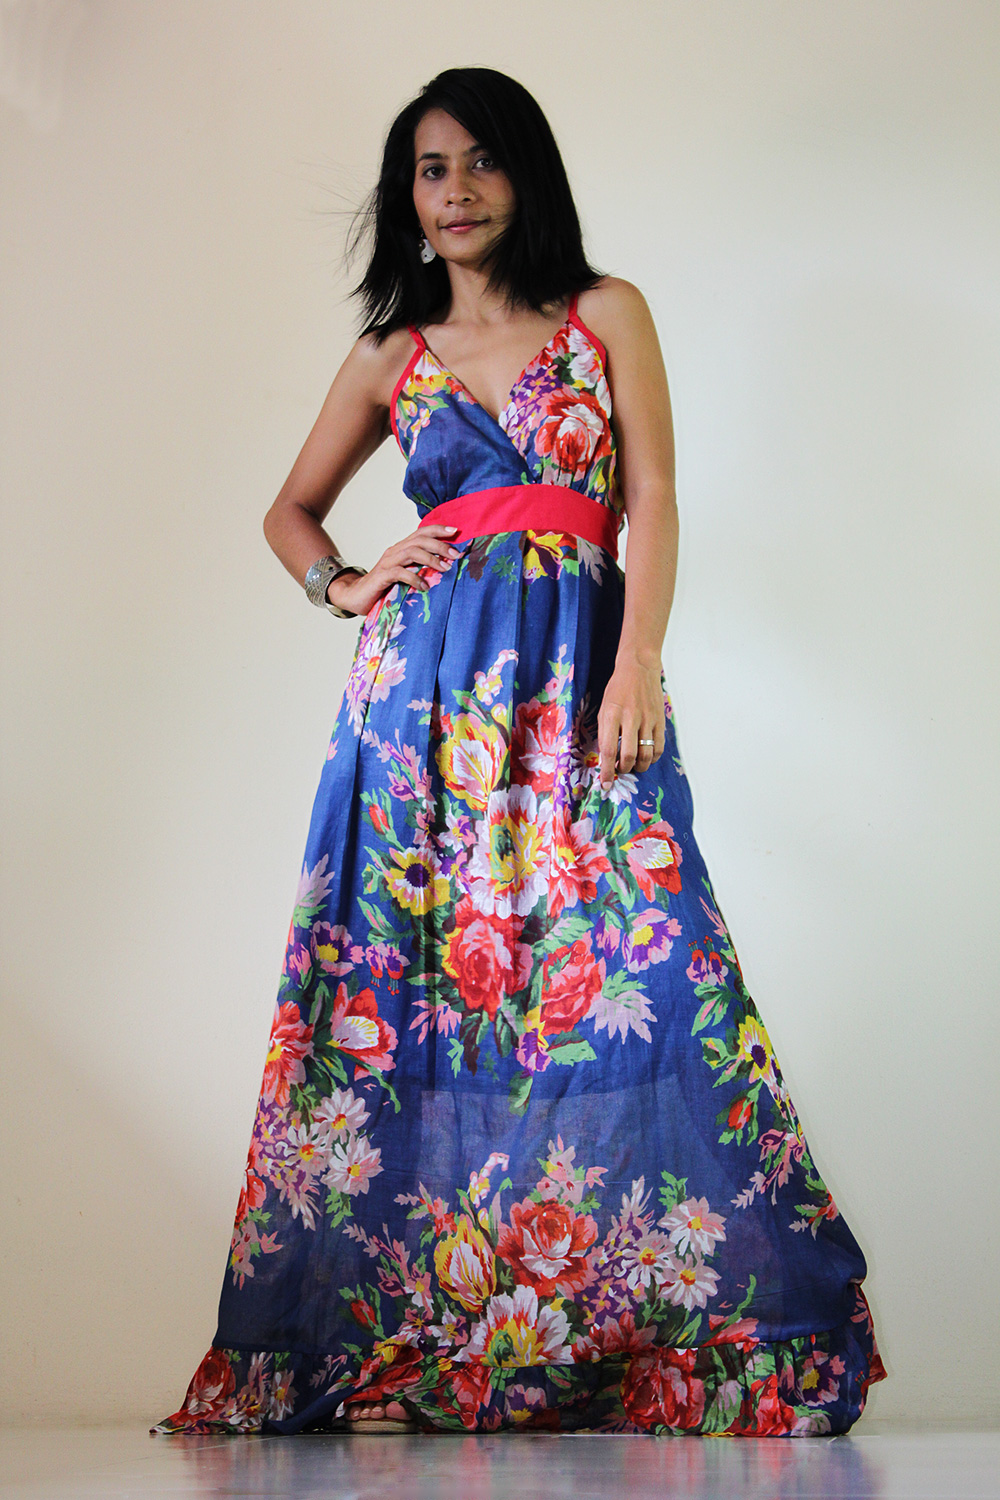 dde964564e6 Floral Maxi Dress Blue Summer Cotton Cute V Neck : Sweetie Vintage  Collection